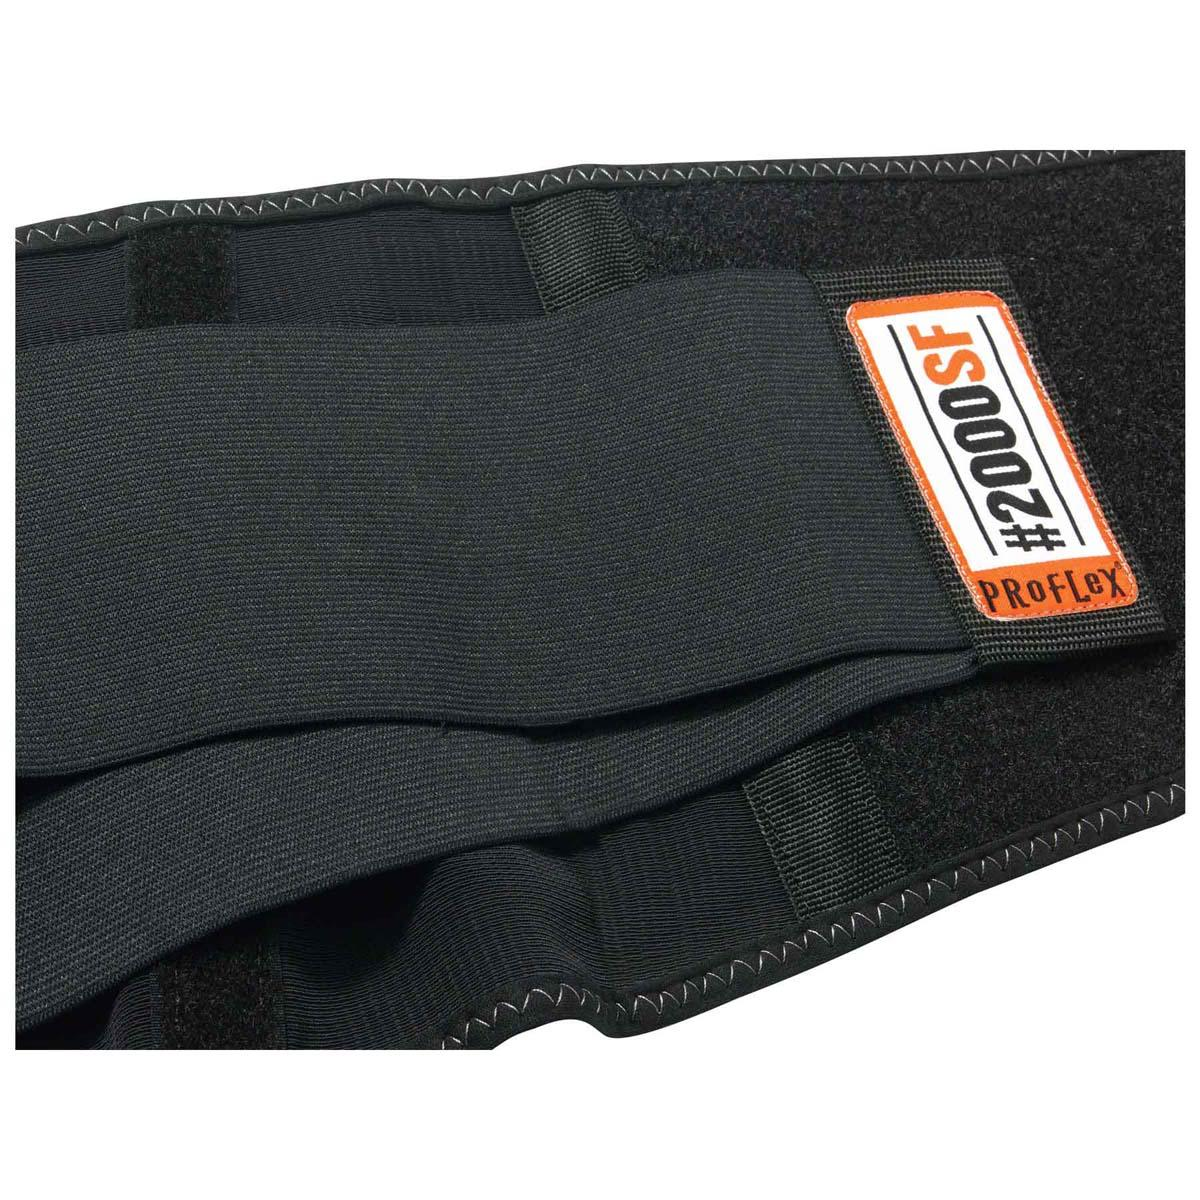 2000SF 3XL Black High-Performance Back Support